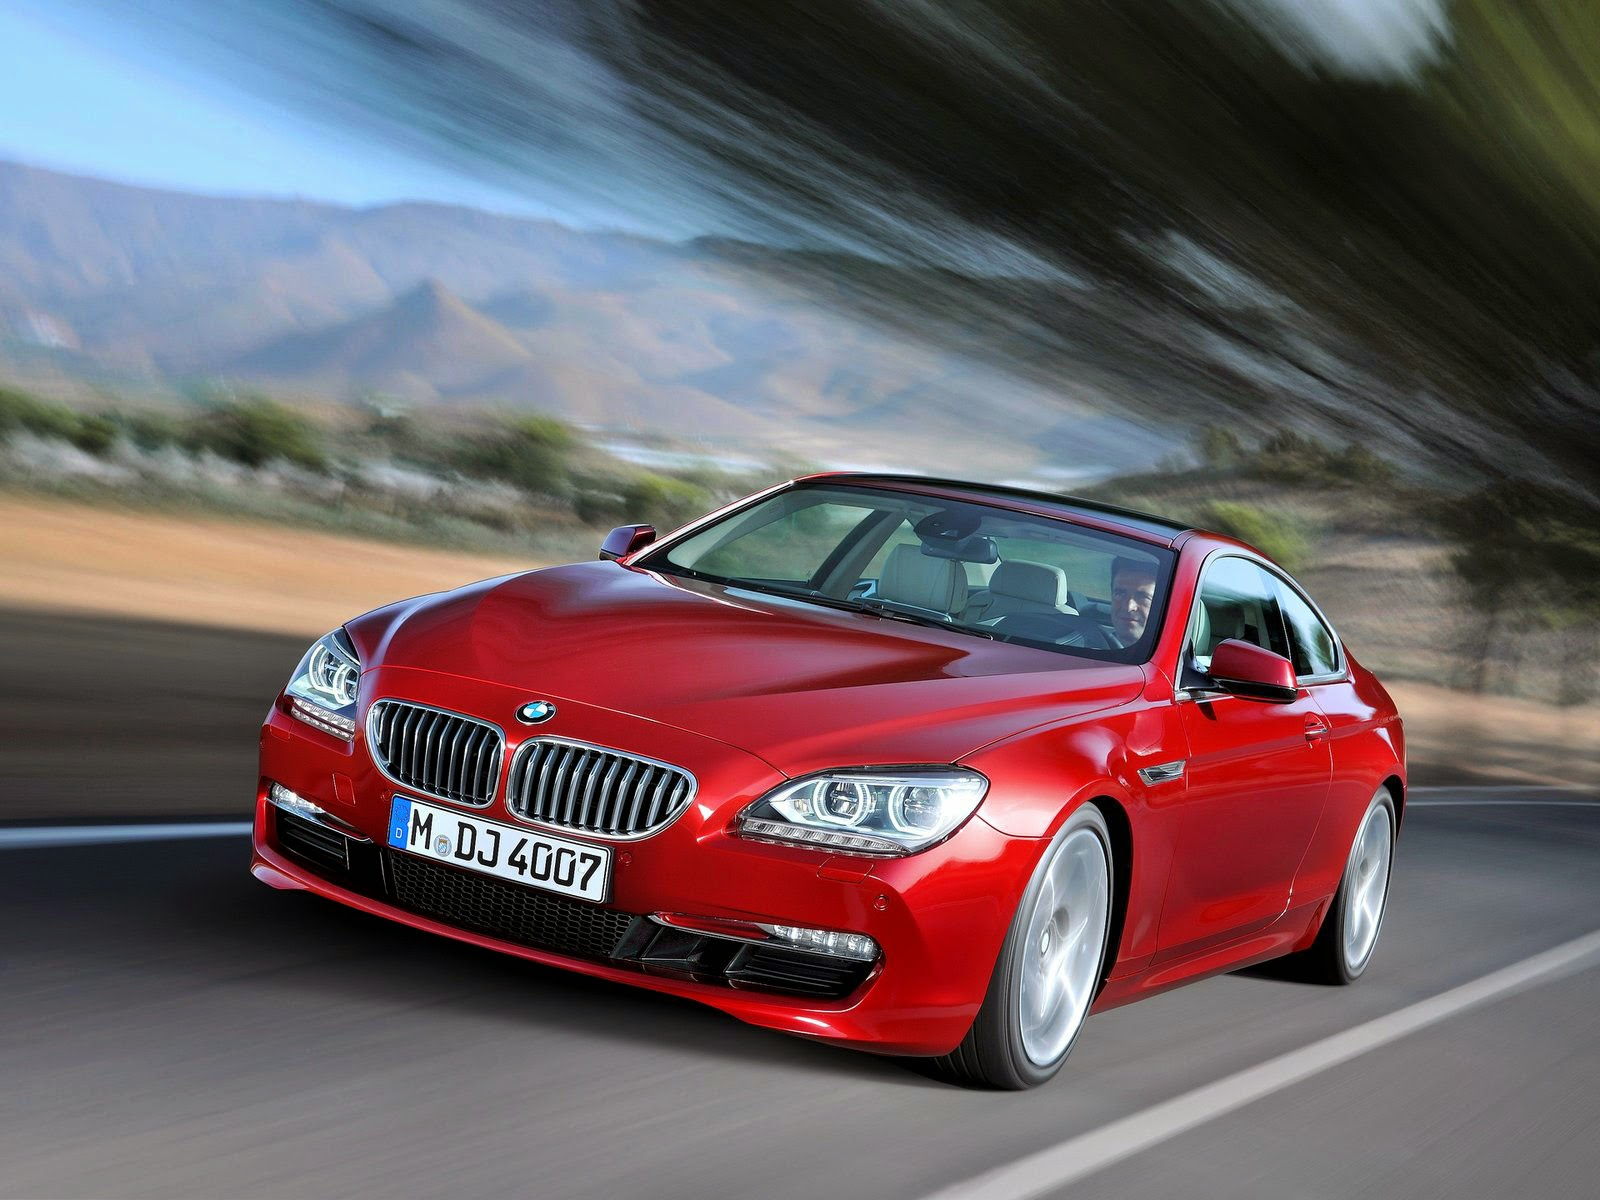 Gambar Mobil BMW Cars Collection